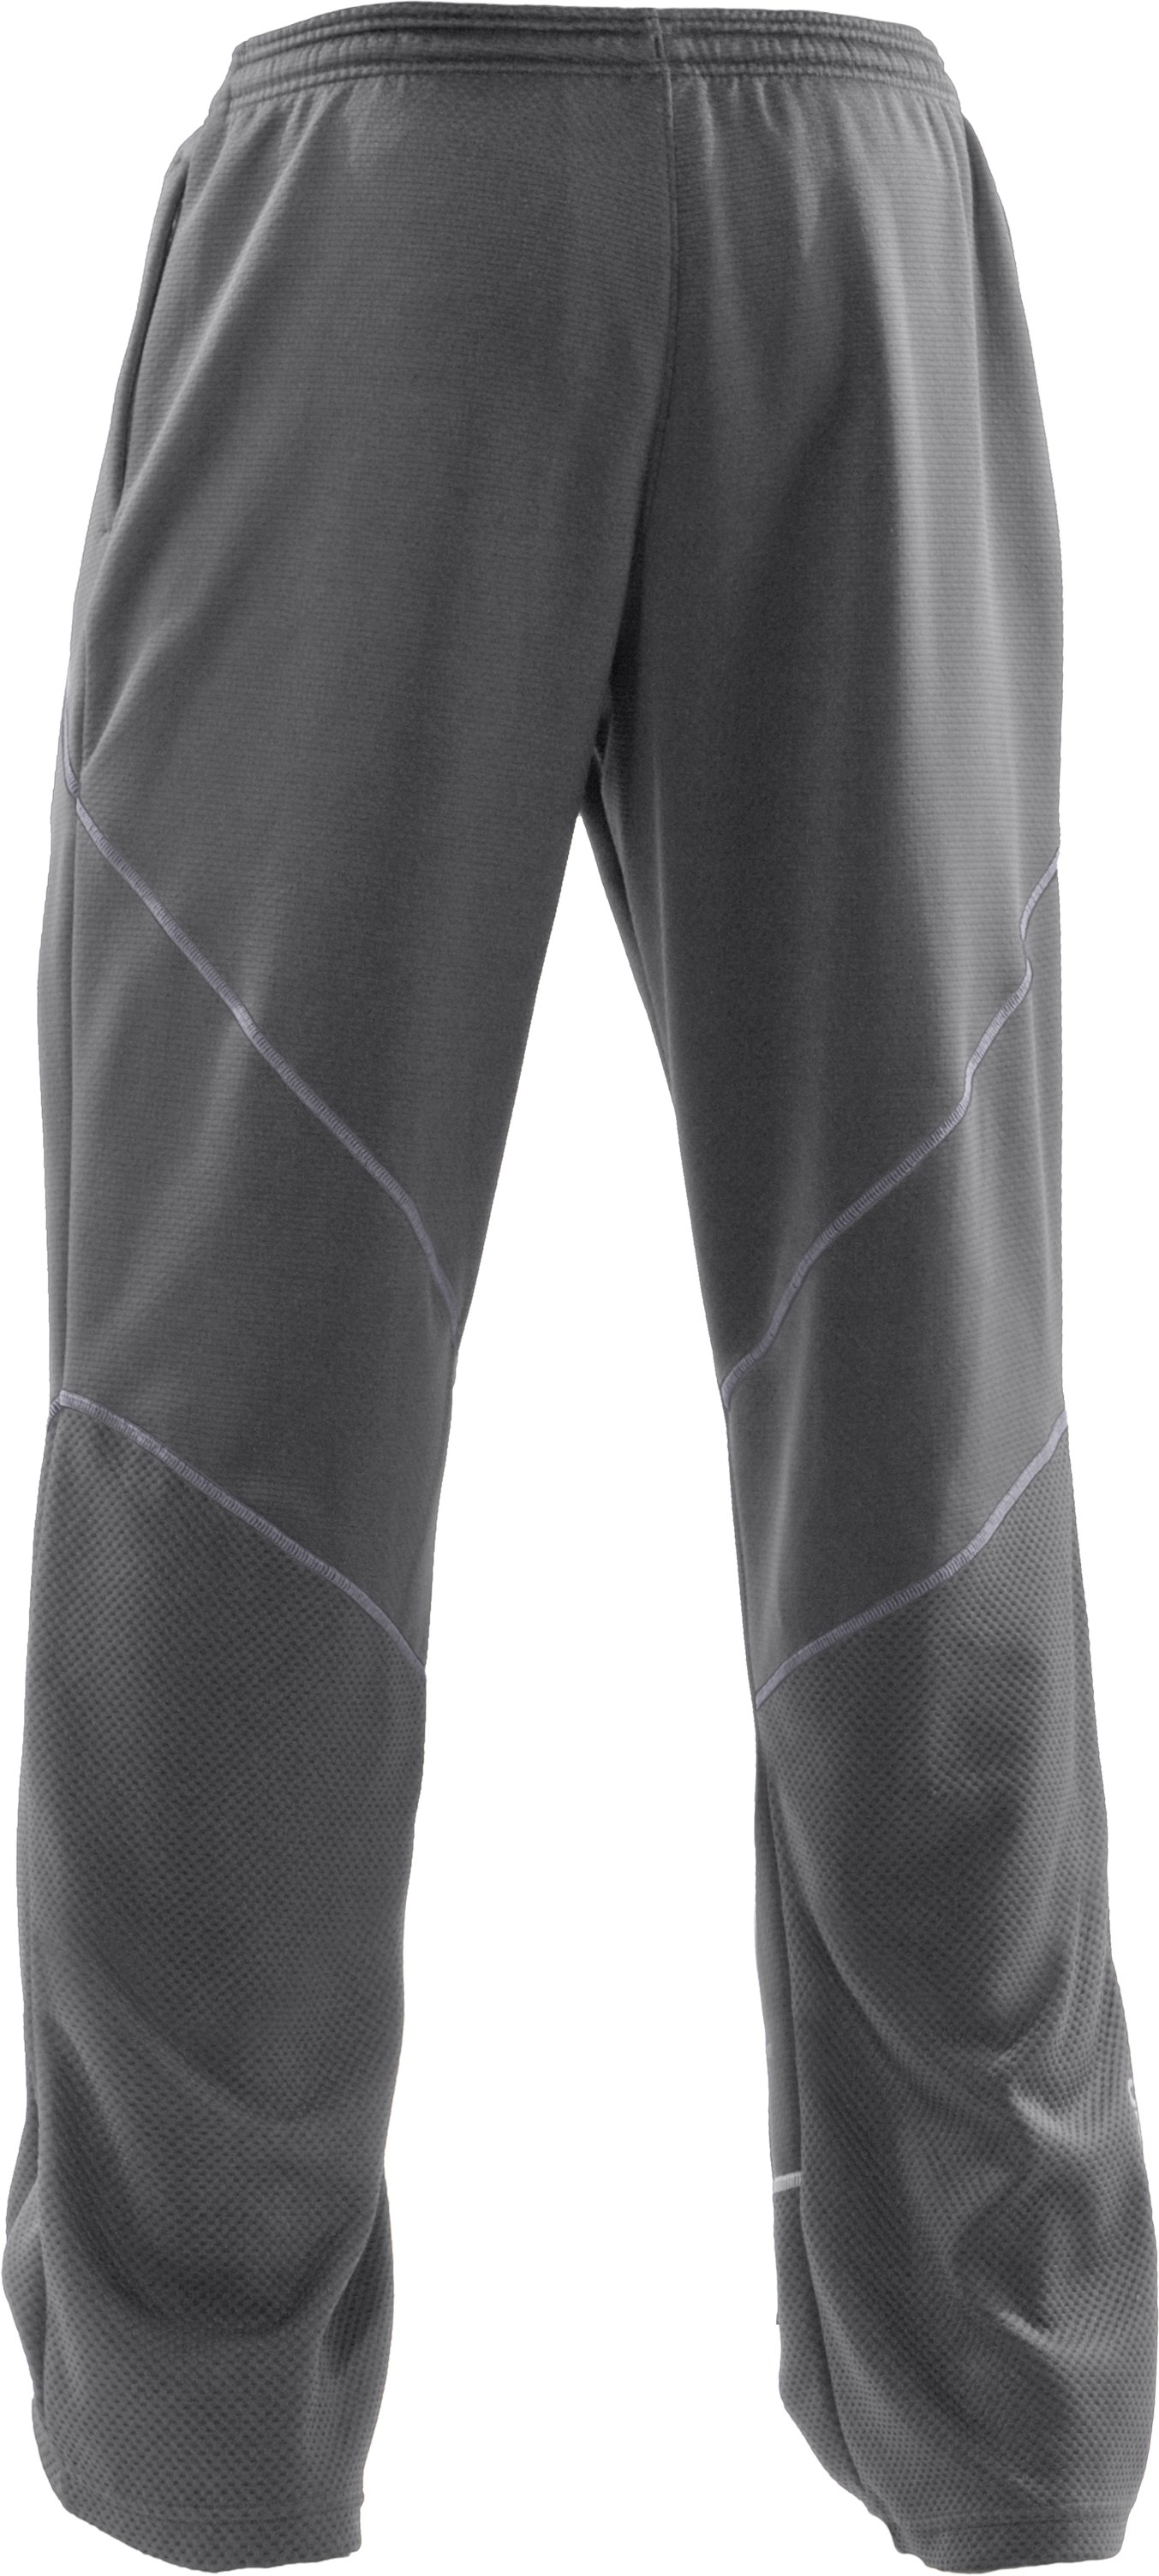 Men's Fuego III Pants, Graphite,